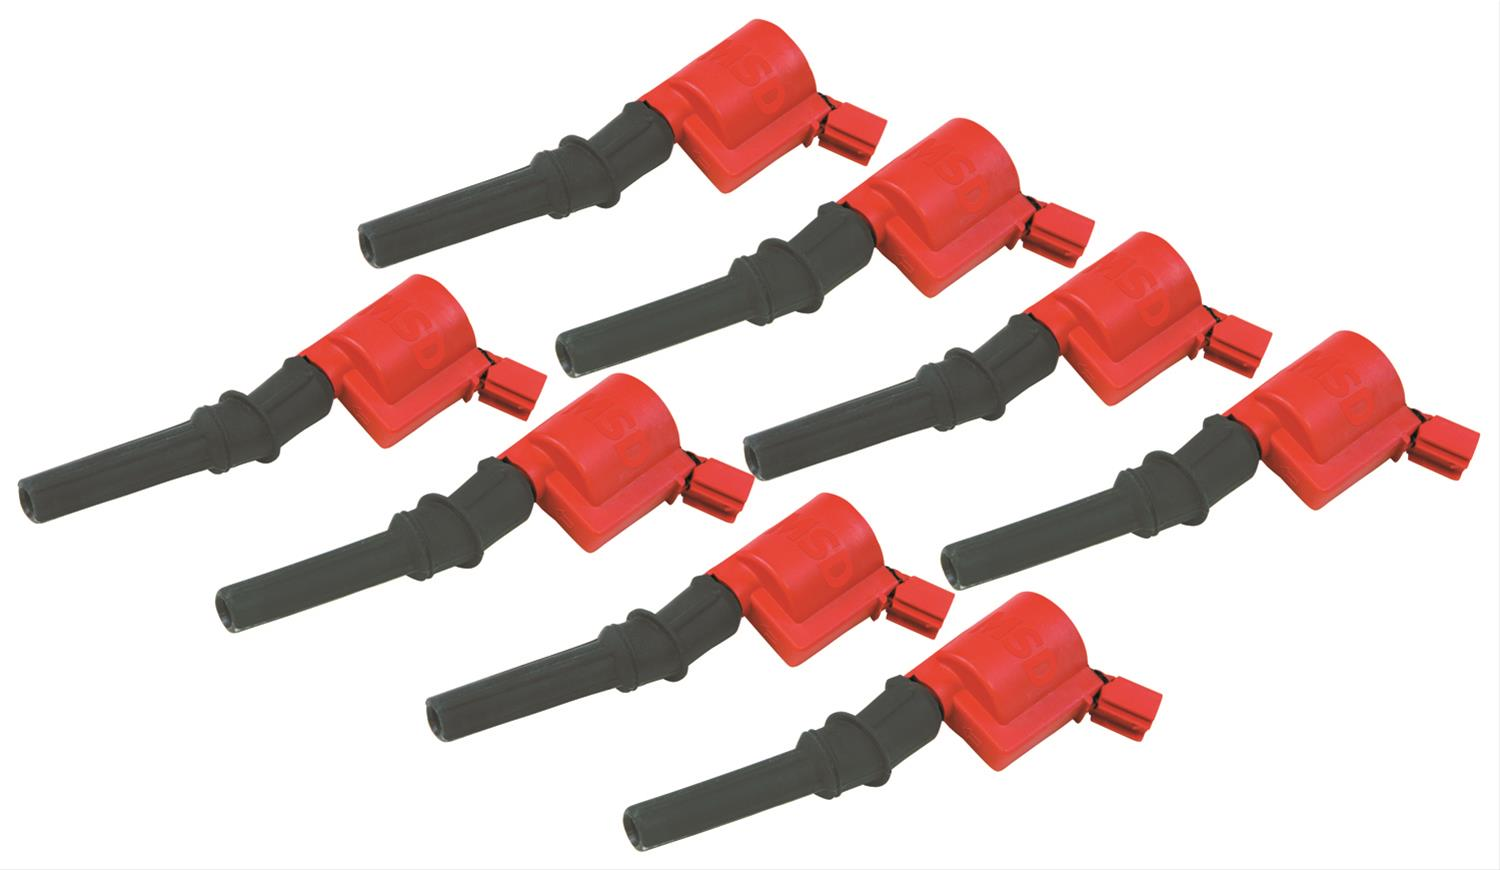 hight resolution of msd ford blaster coil on plug ignition coil packs 82428 free shipping on orders over 99 at summit racing